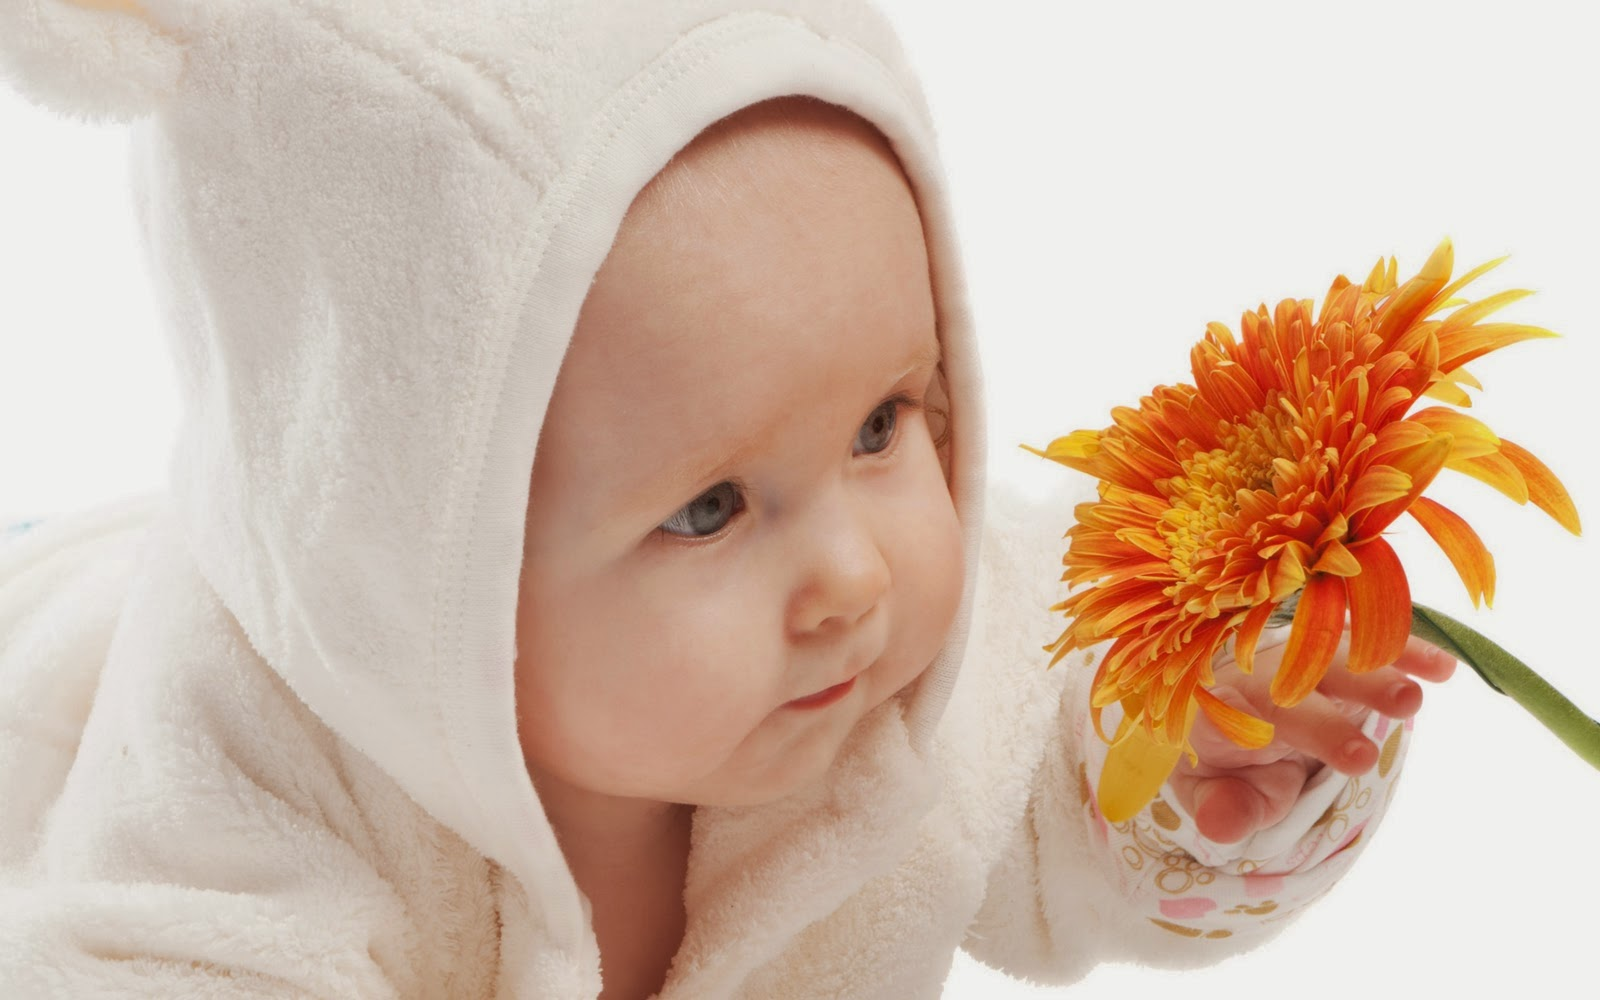 Cute Baby Wallpapers Latest: HD WALLPAPER GALLERY: Cute Kids Wallpaper